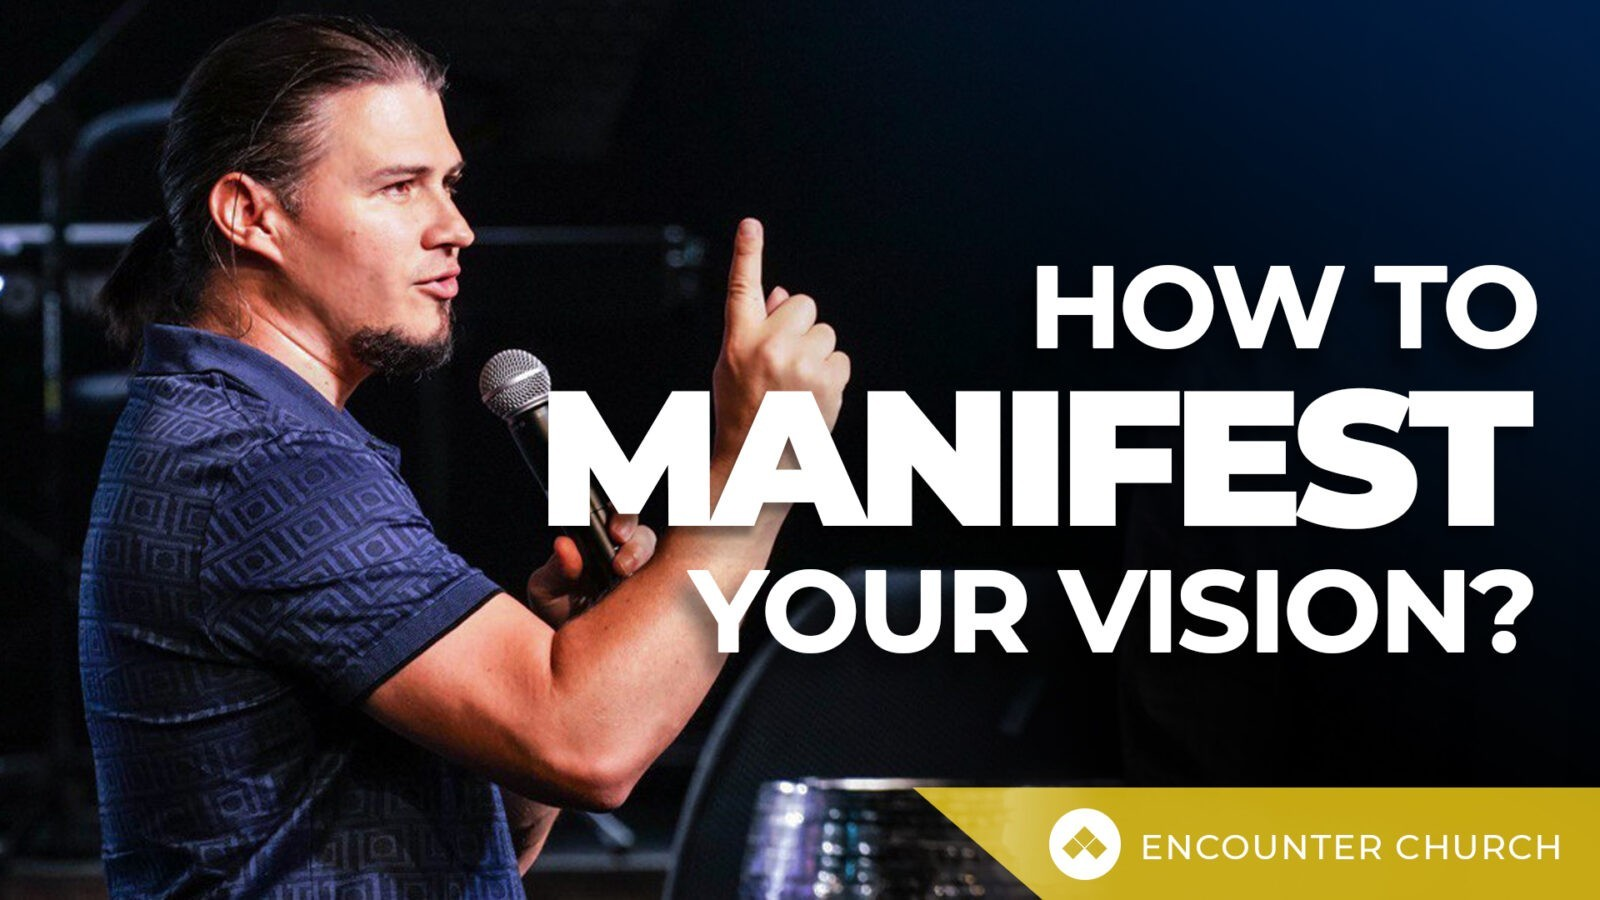 How To Manifest Your Vision?